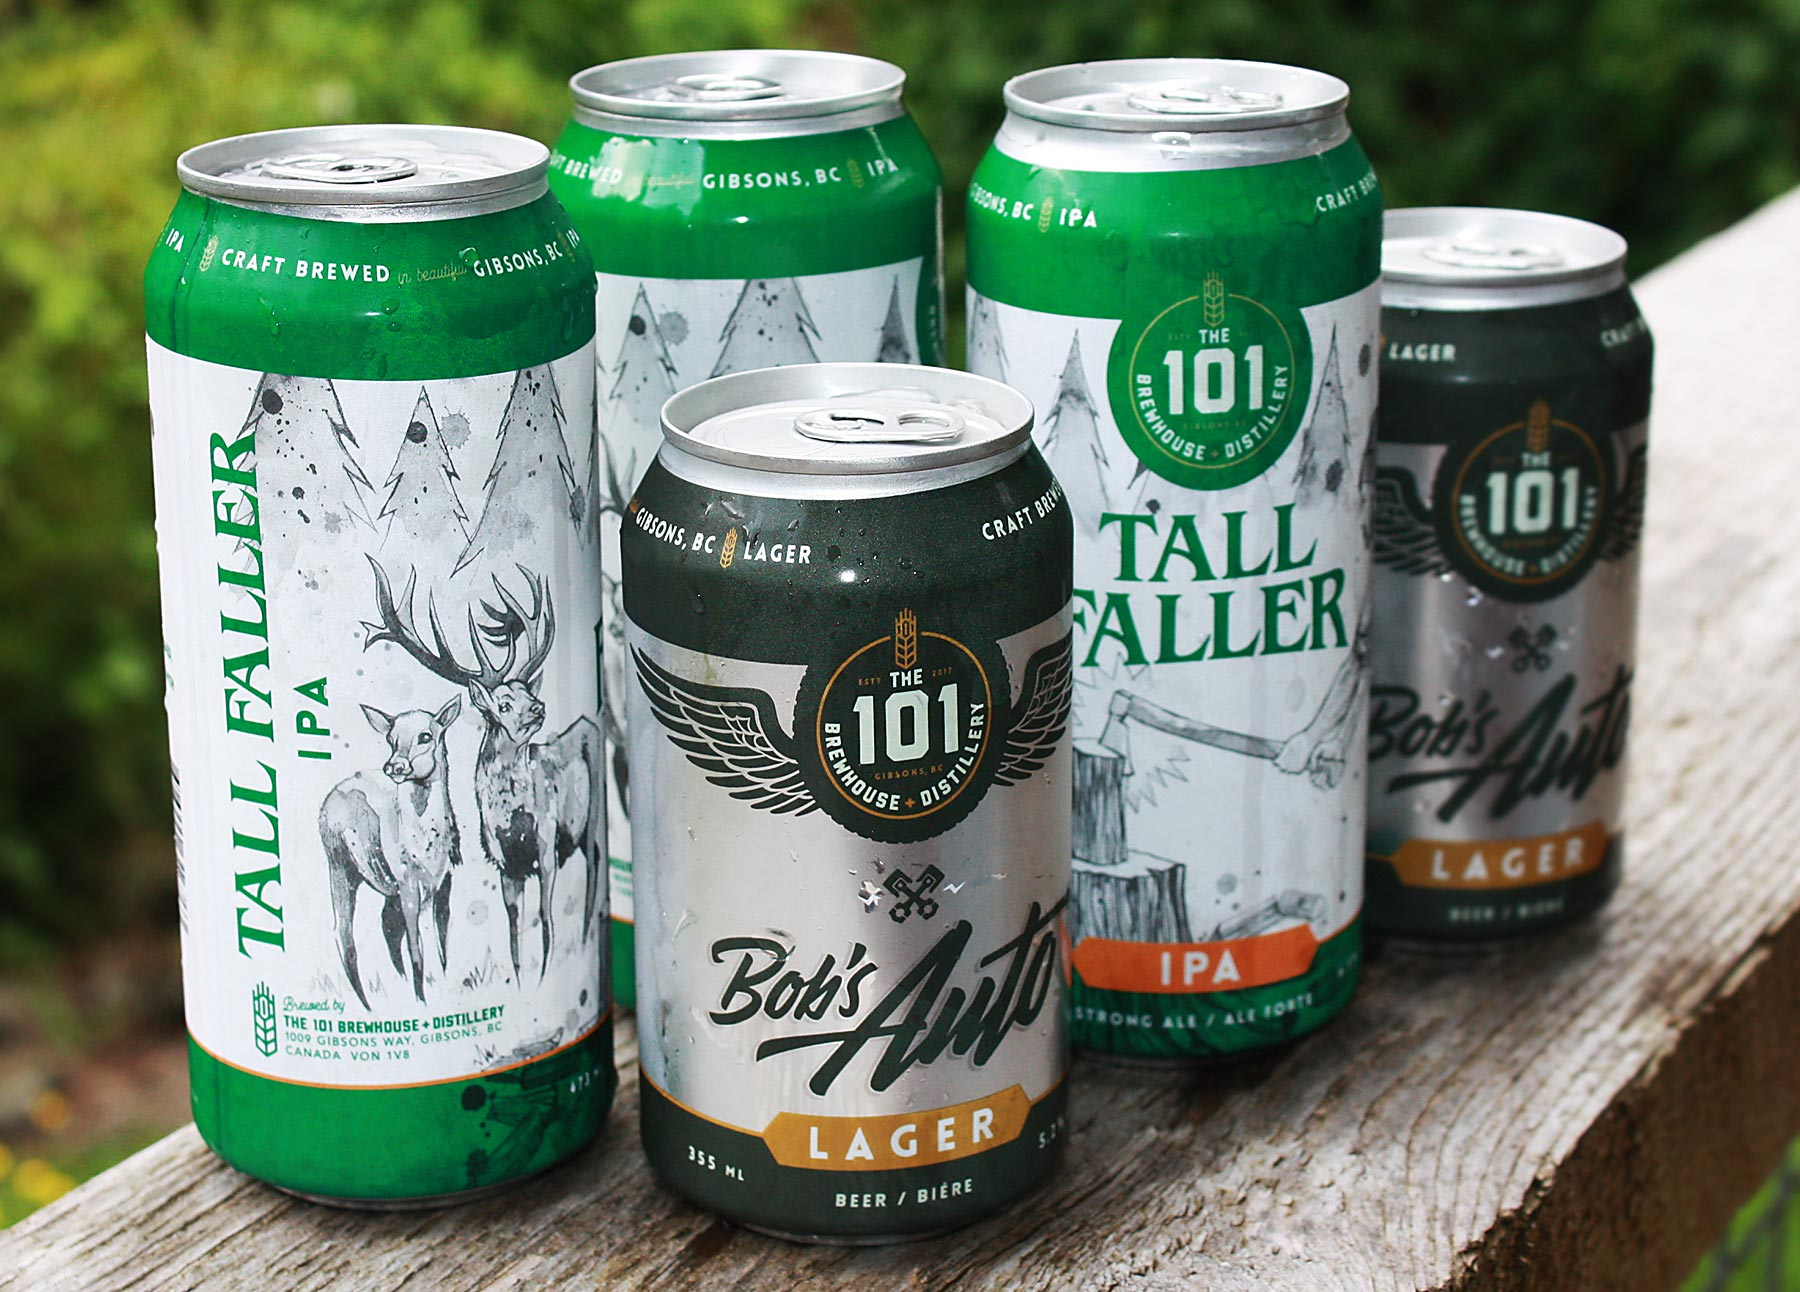 The101_beer_cans.jpg